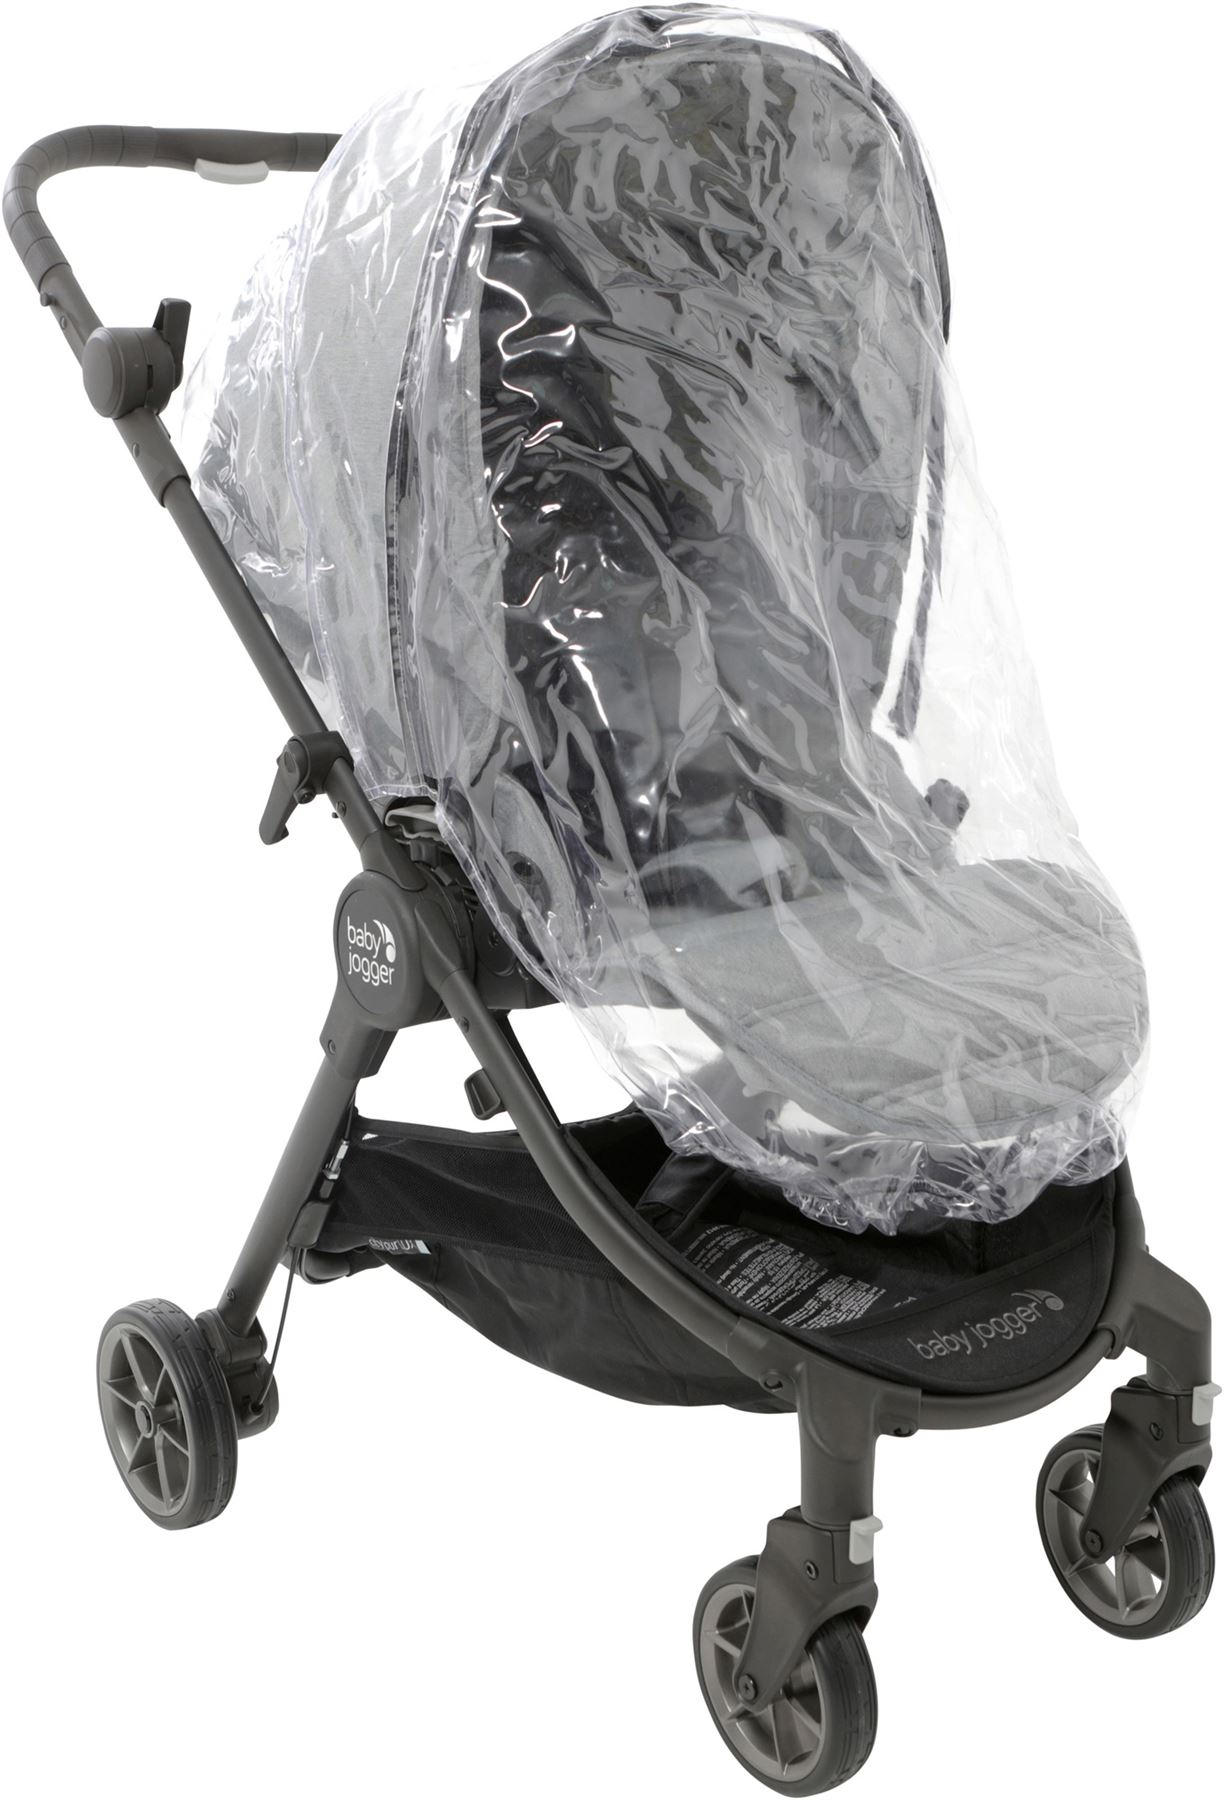 Details About Baby Jogger City Tour Lux Stroller Raincover Baby Pushchair Cover Bn